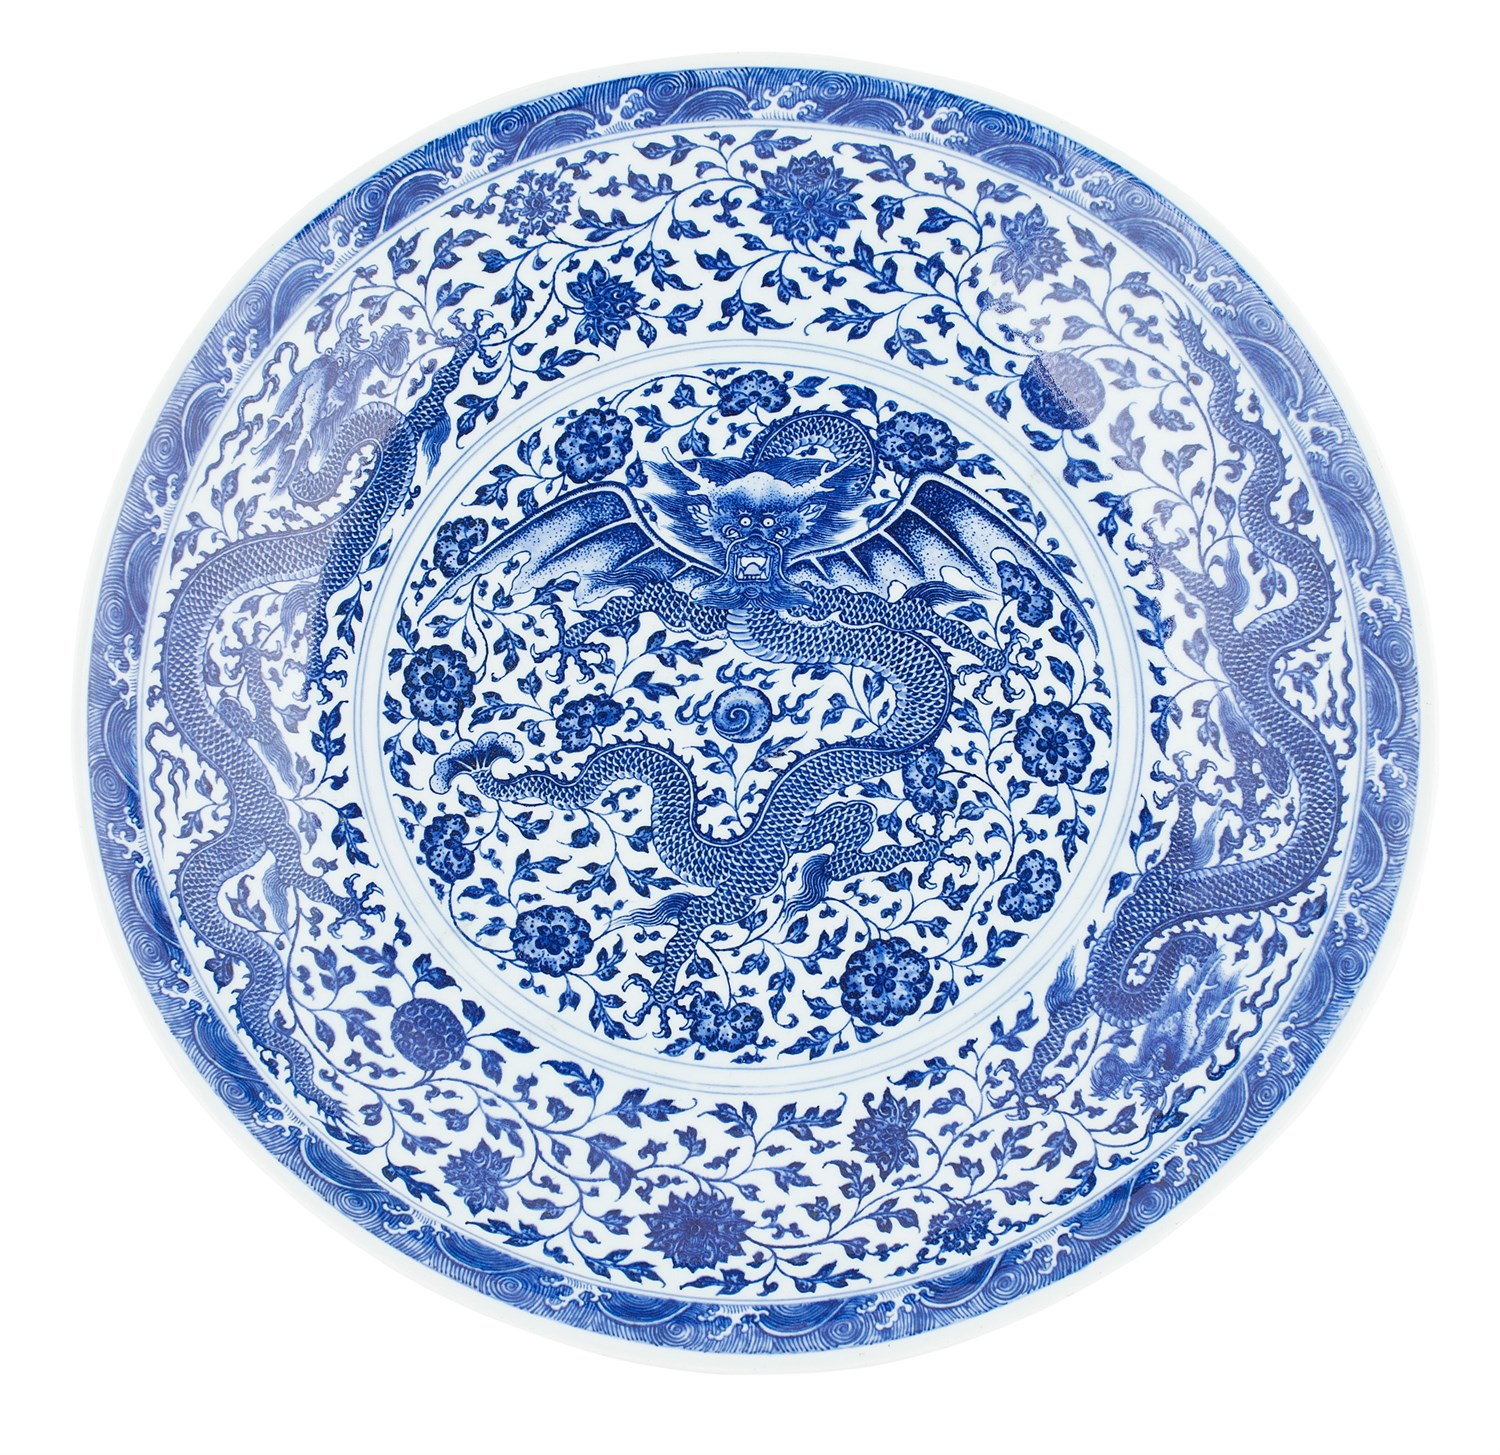 368 - LARGE BLUE AND WHITE MING STYLE 'DRAGON' CHARGER